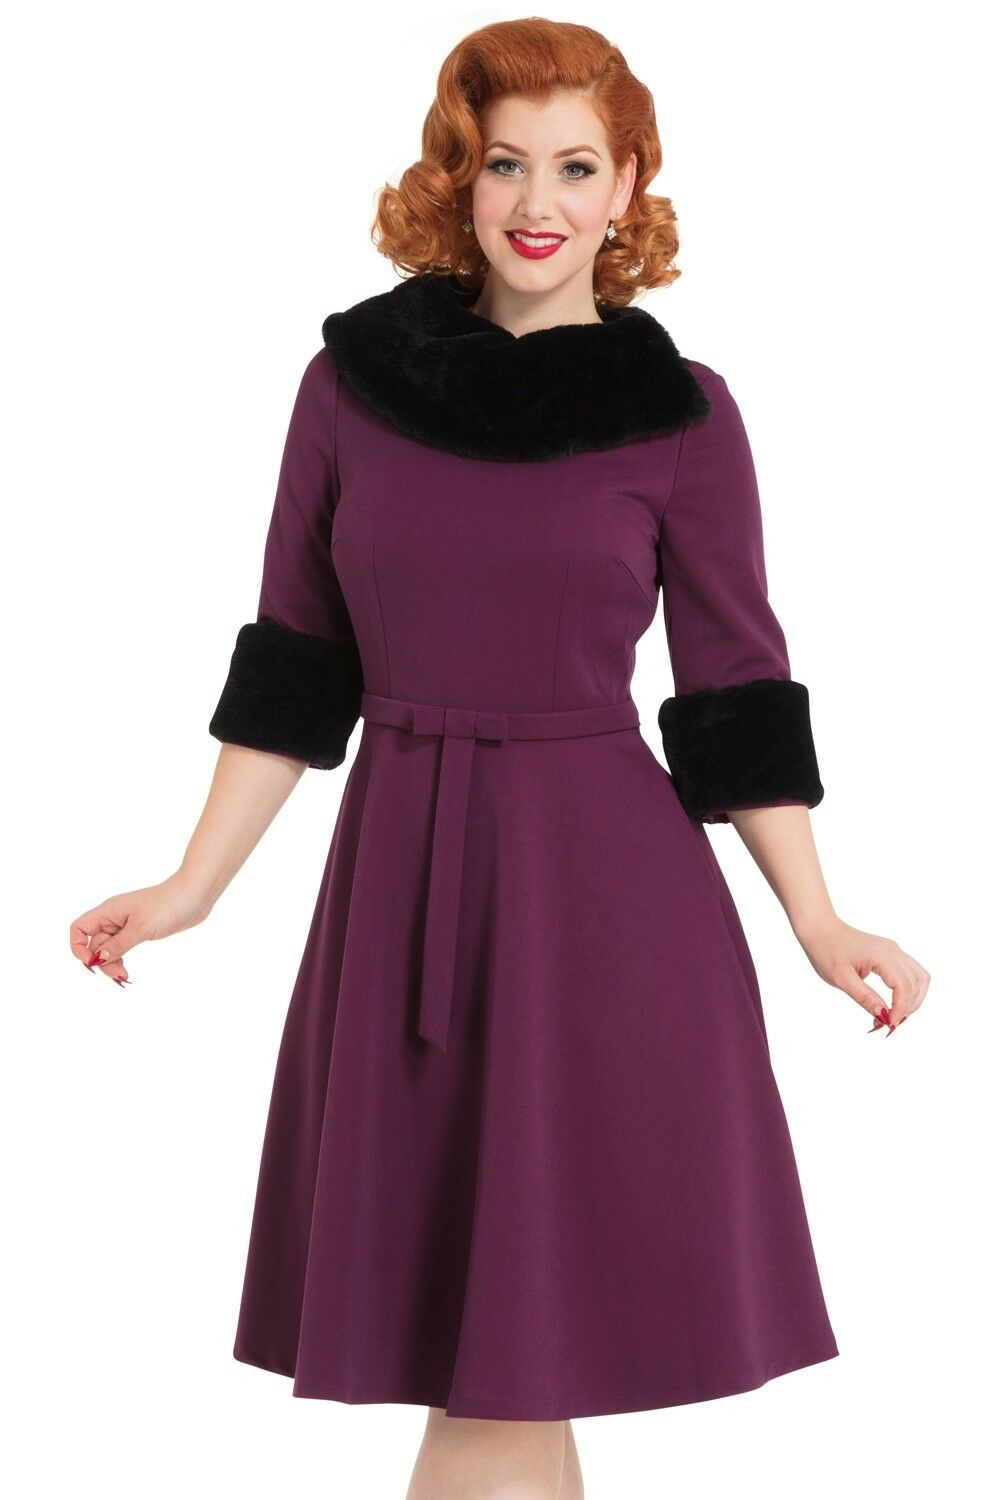 VOODOO VIXEN NWT 50's 60's Style lila schwarz Fur Fit Flare Rockabilly Dress 8